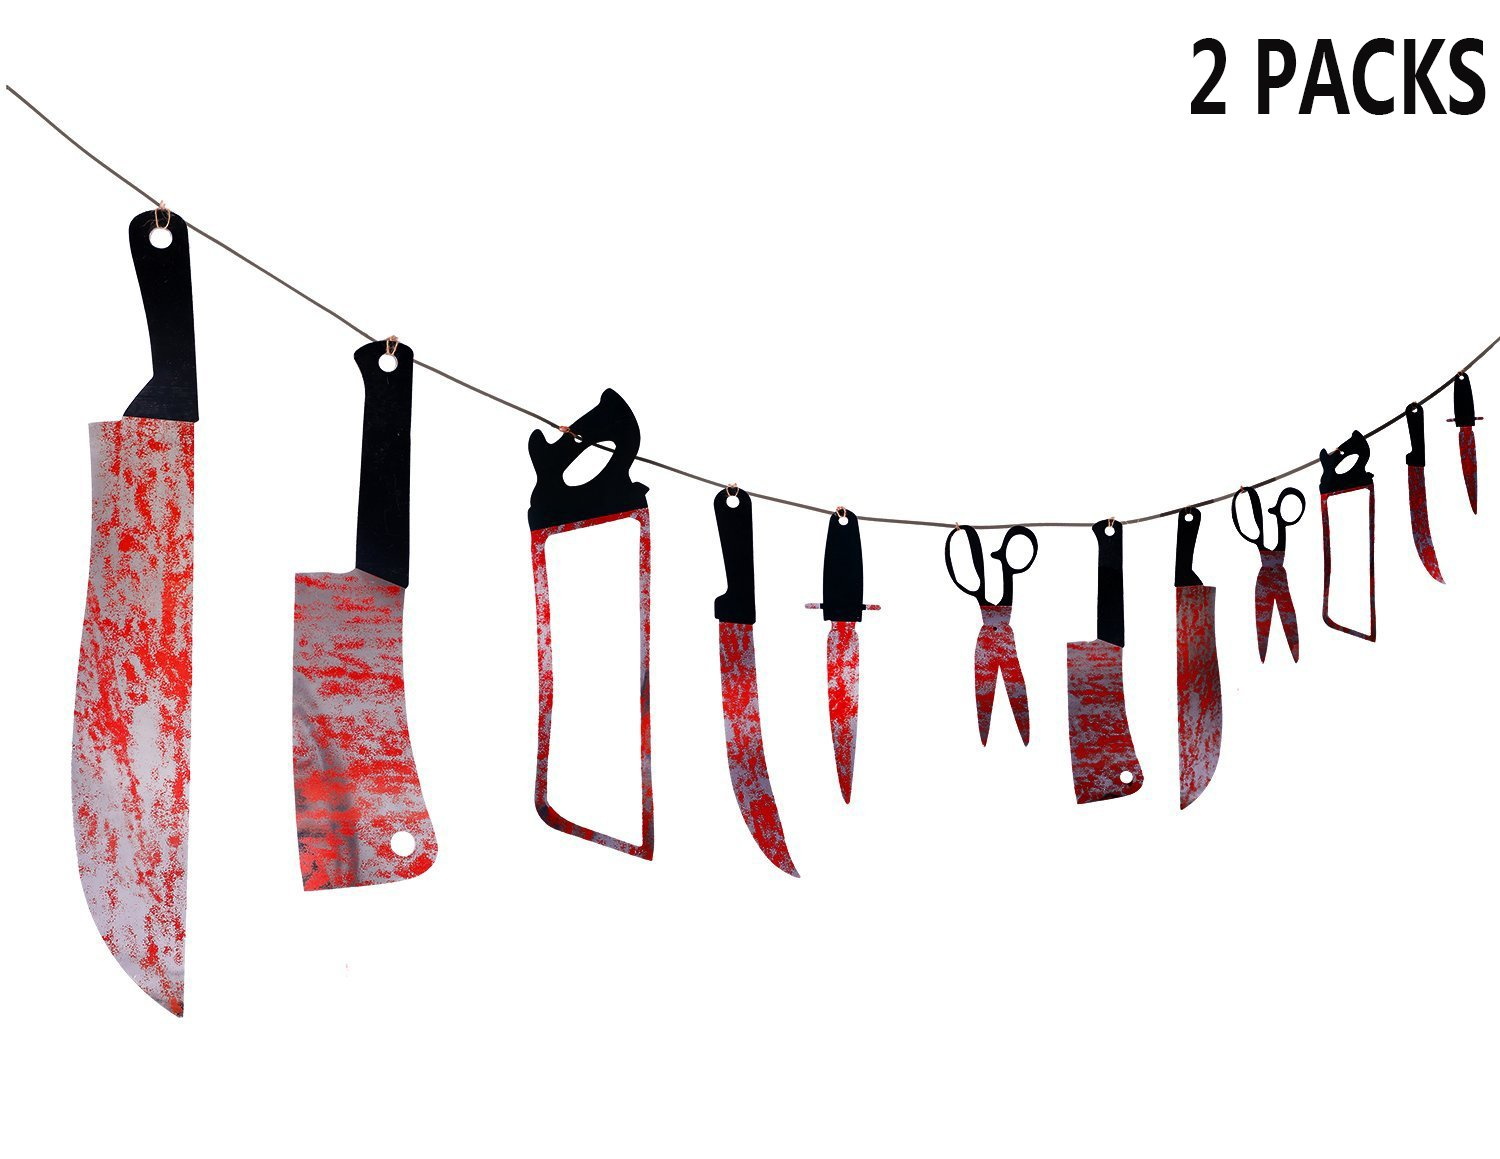 METABLE 24PCS Bloody Weapons Garland Props Halloween Zombie Vampire Party Decorations Supplies in Flags Banners Accessories from Home Garden